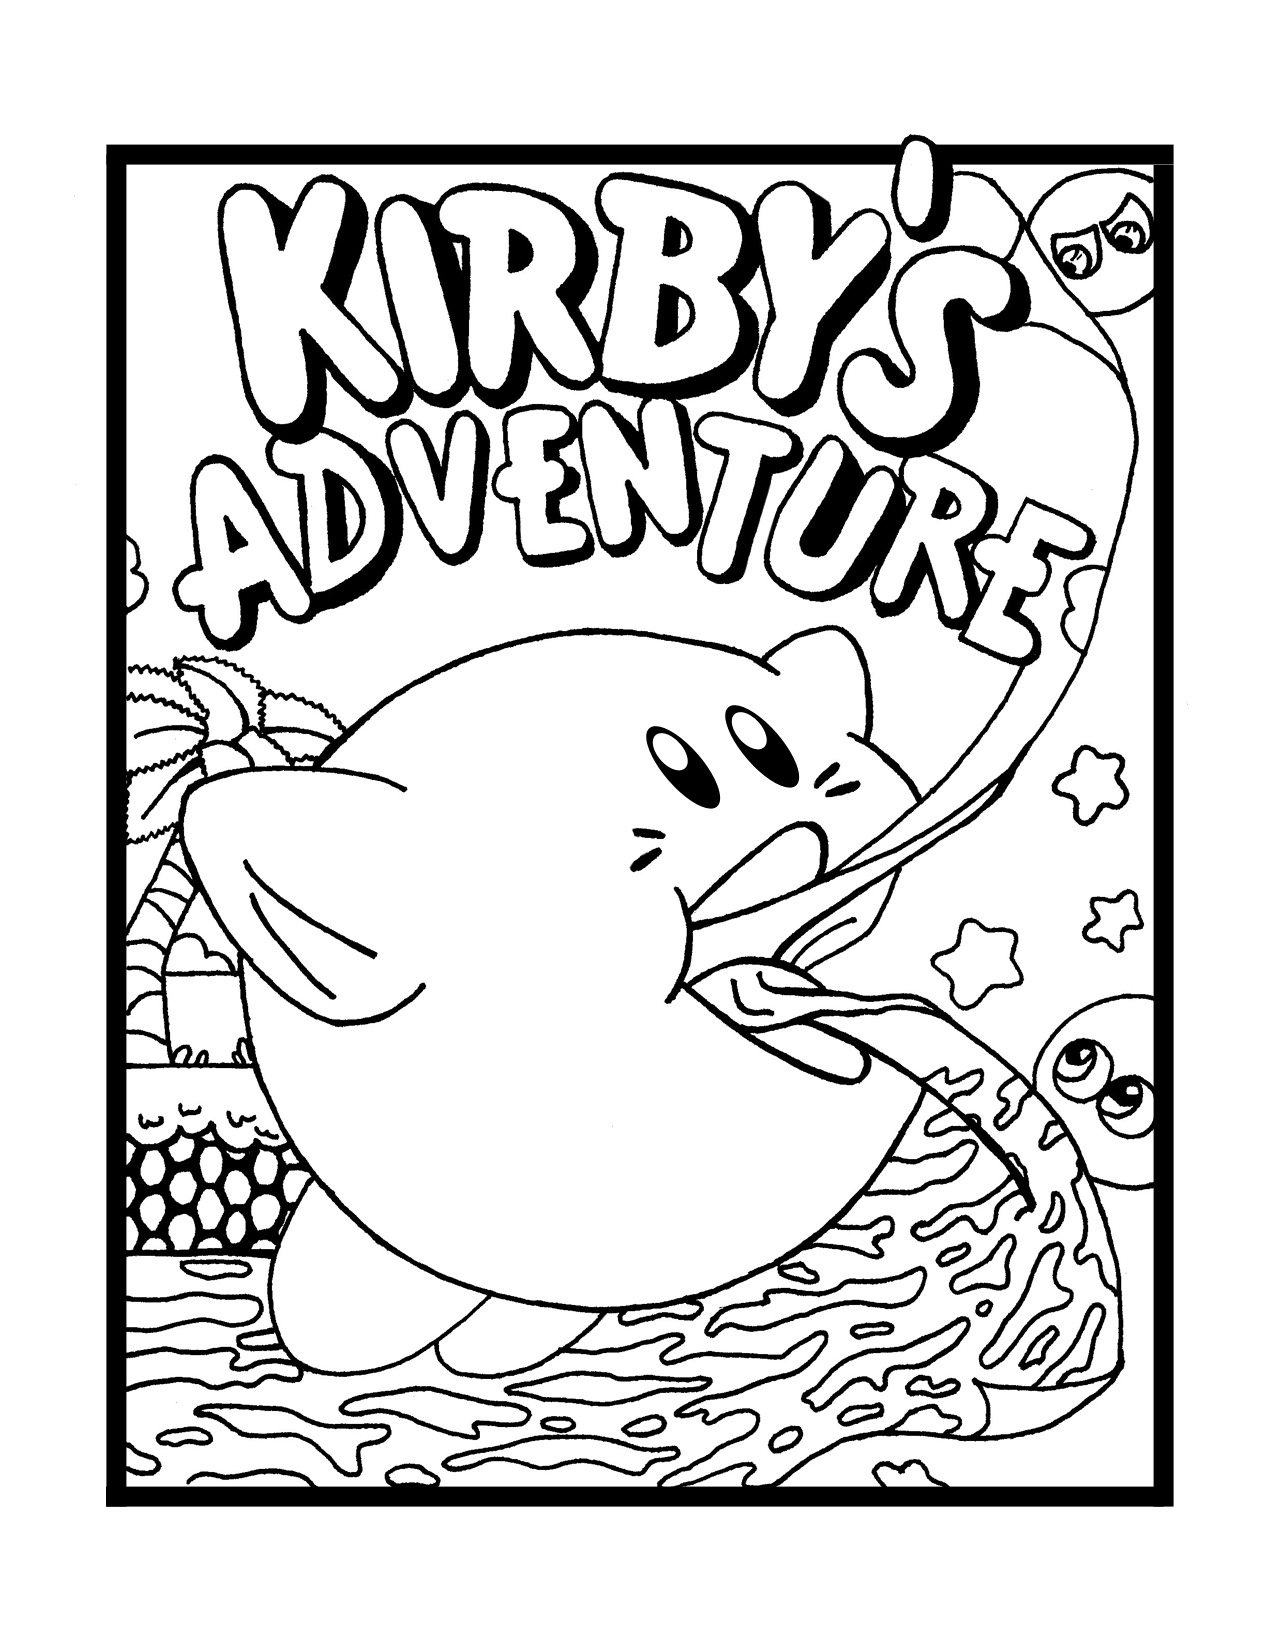 Kirby Coloring Pages To Download And Print For Free